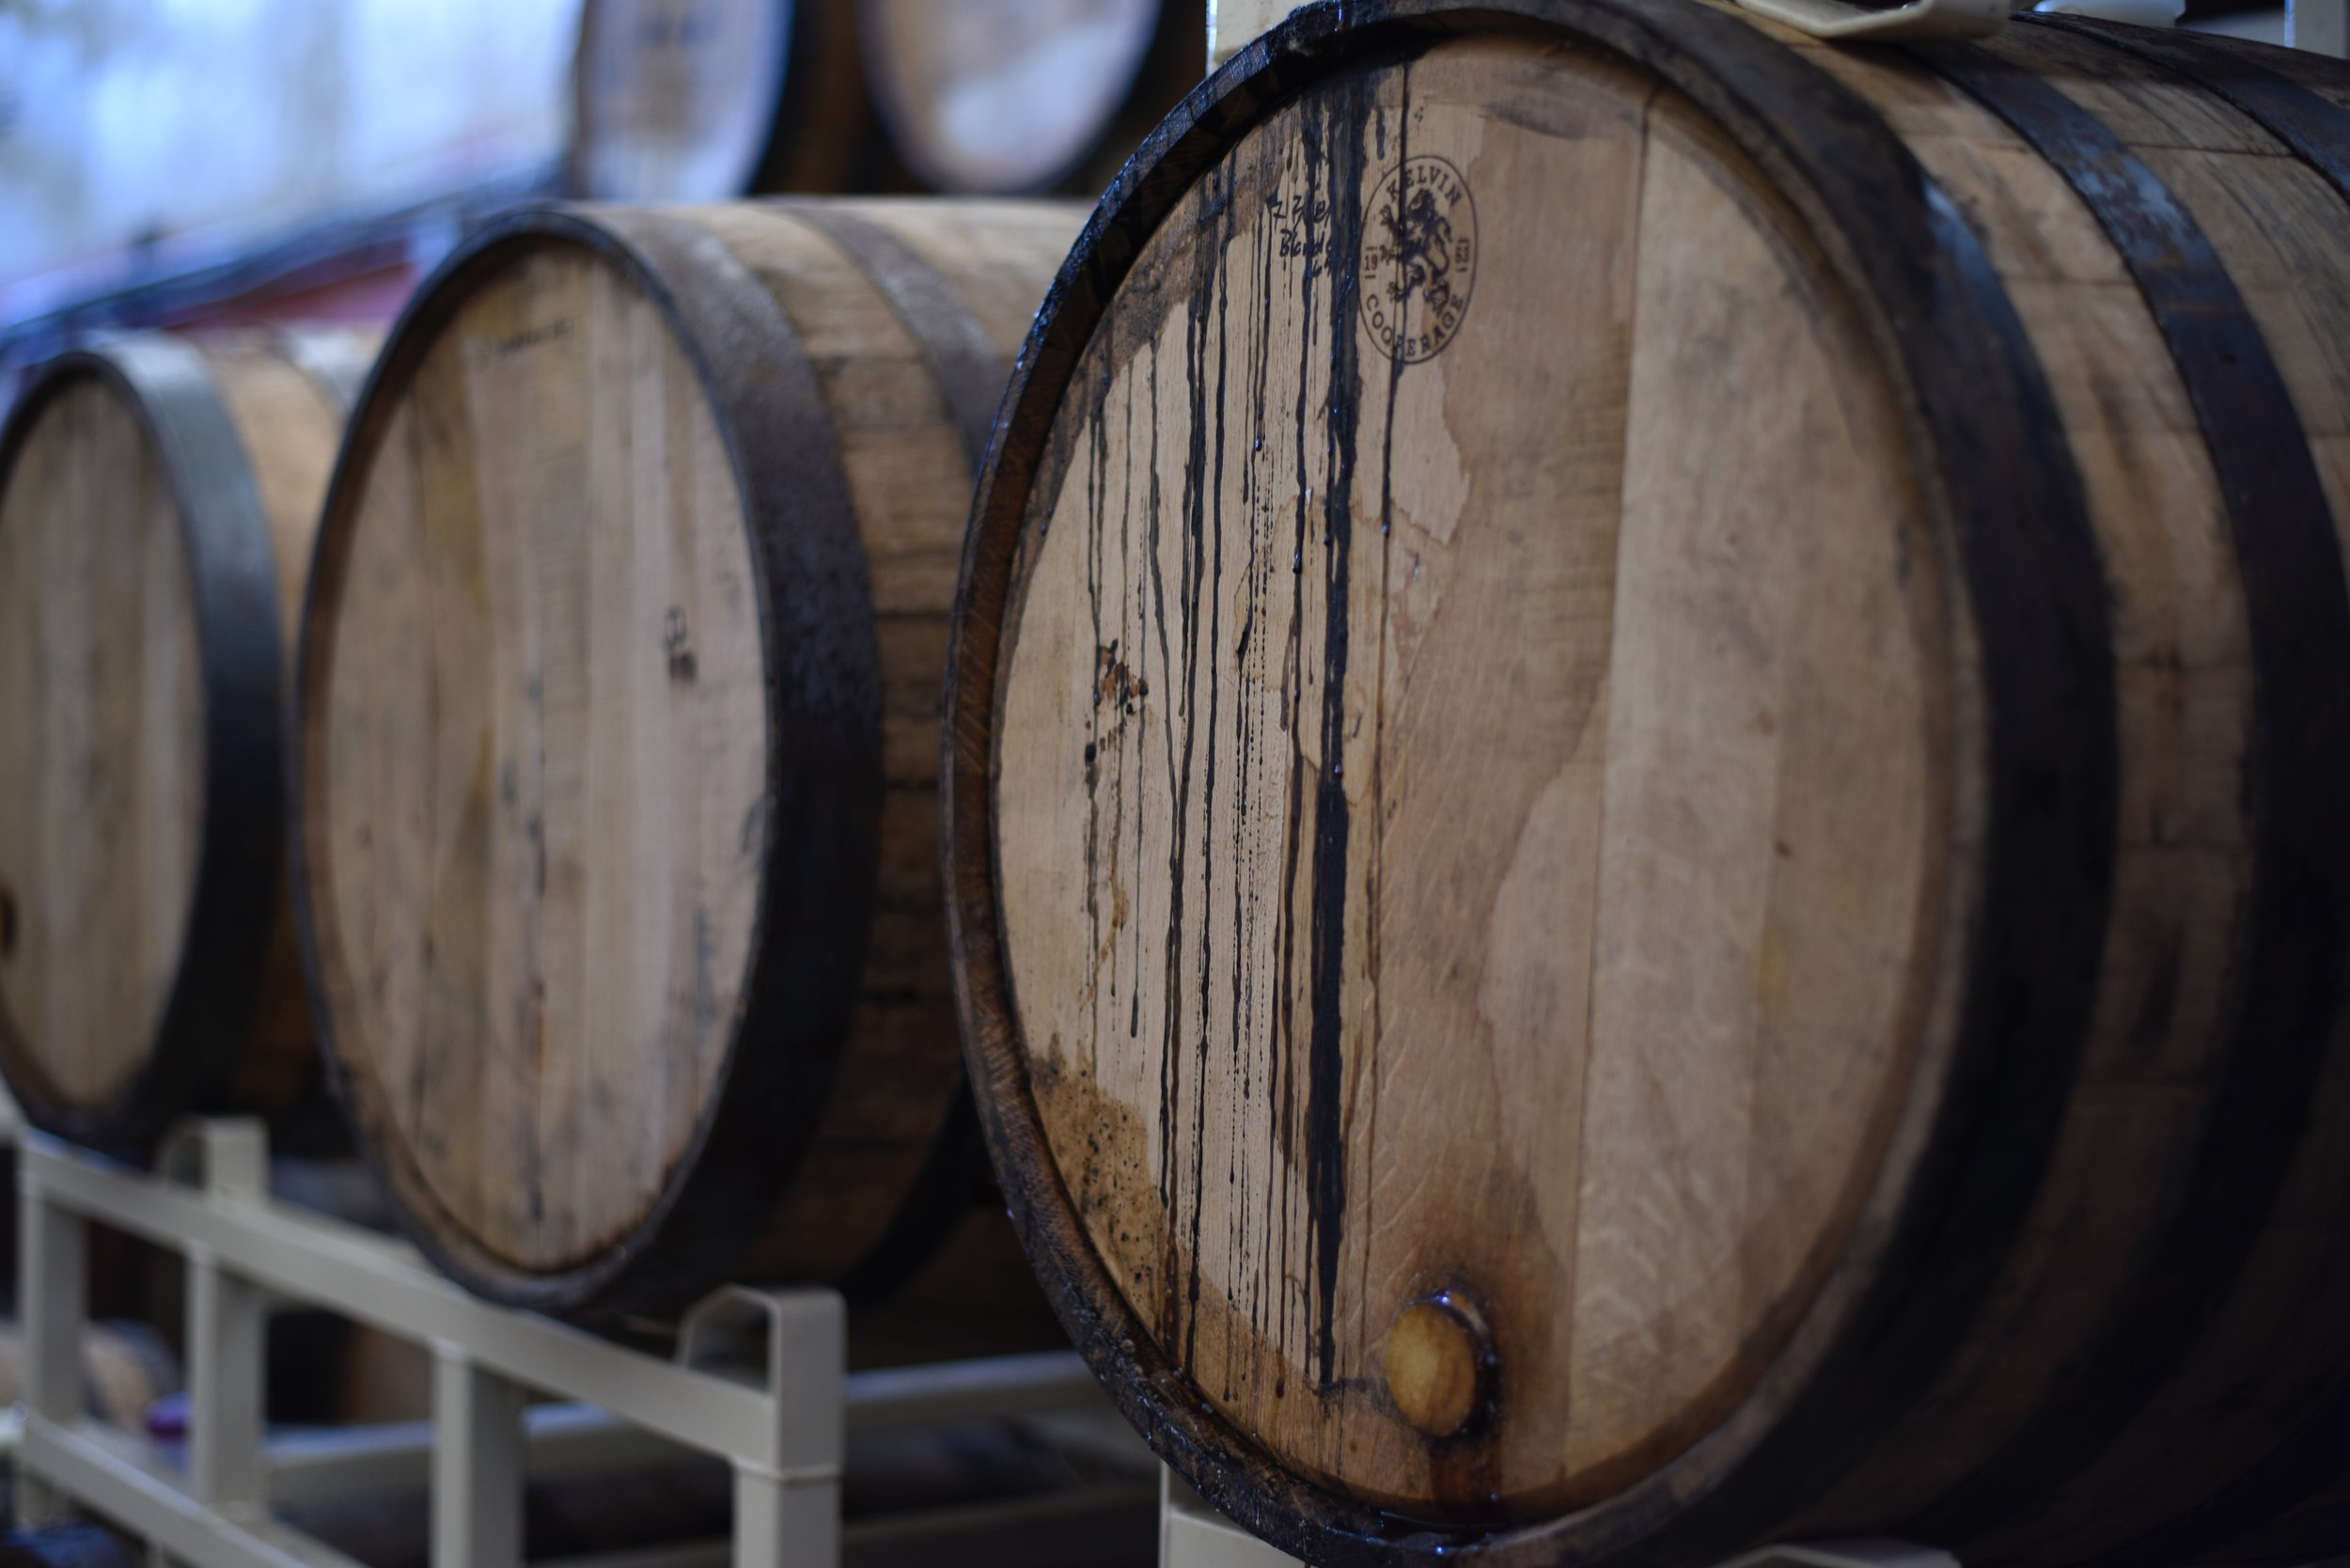 We will have a robust barrel-aging program, adding new and unique tastes to our specialty beers.